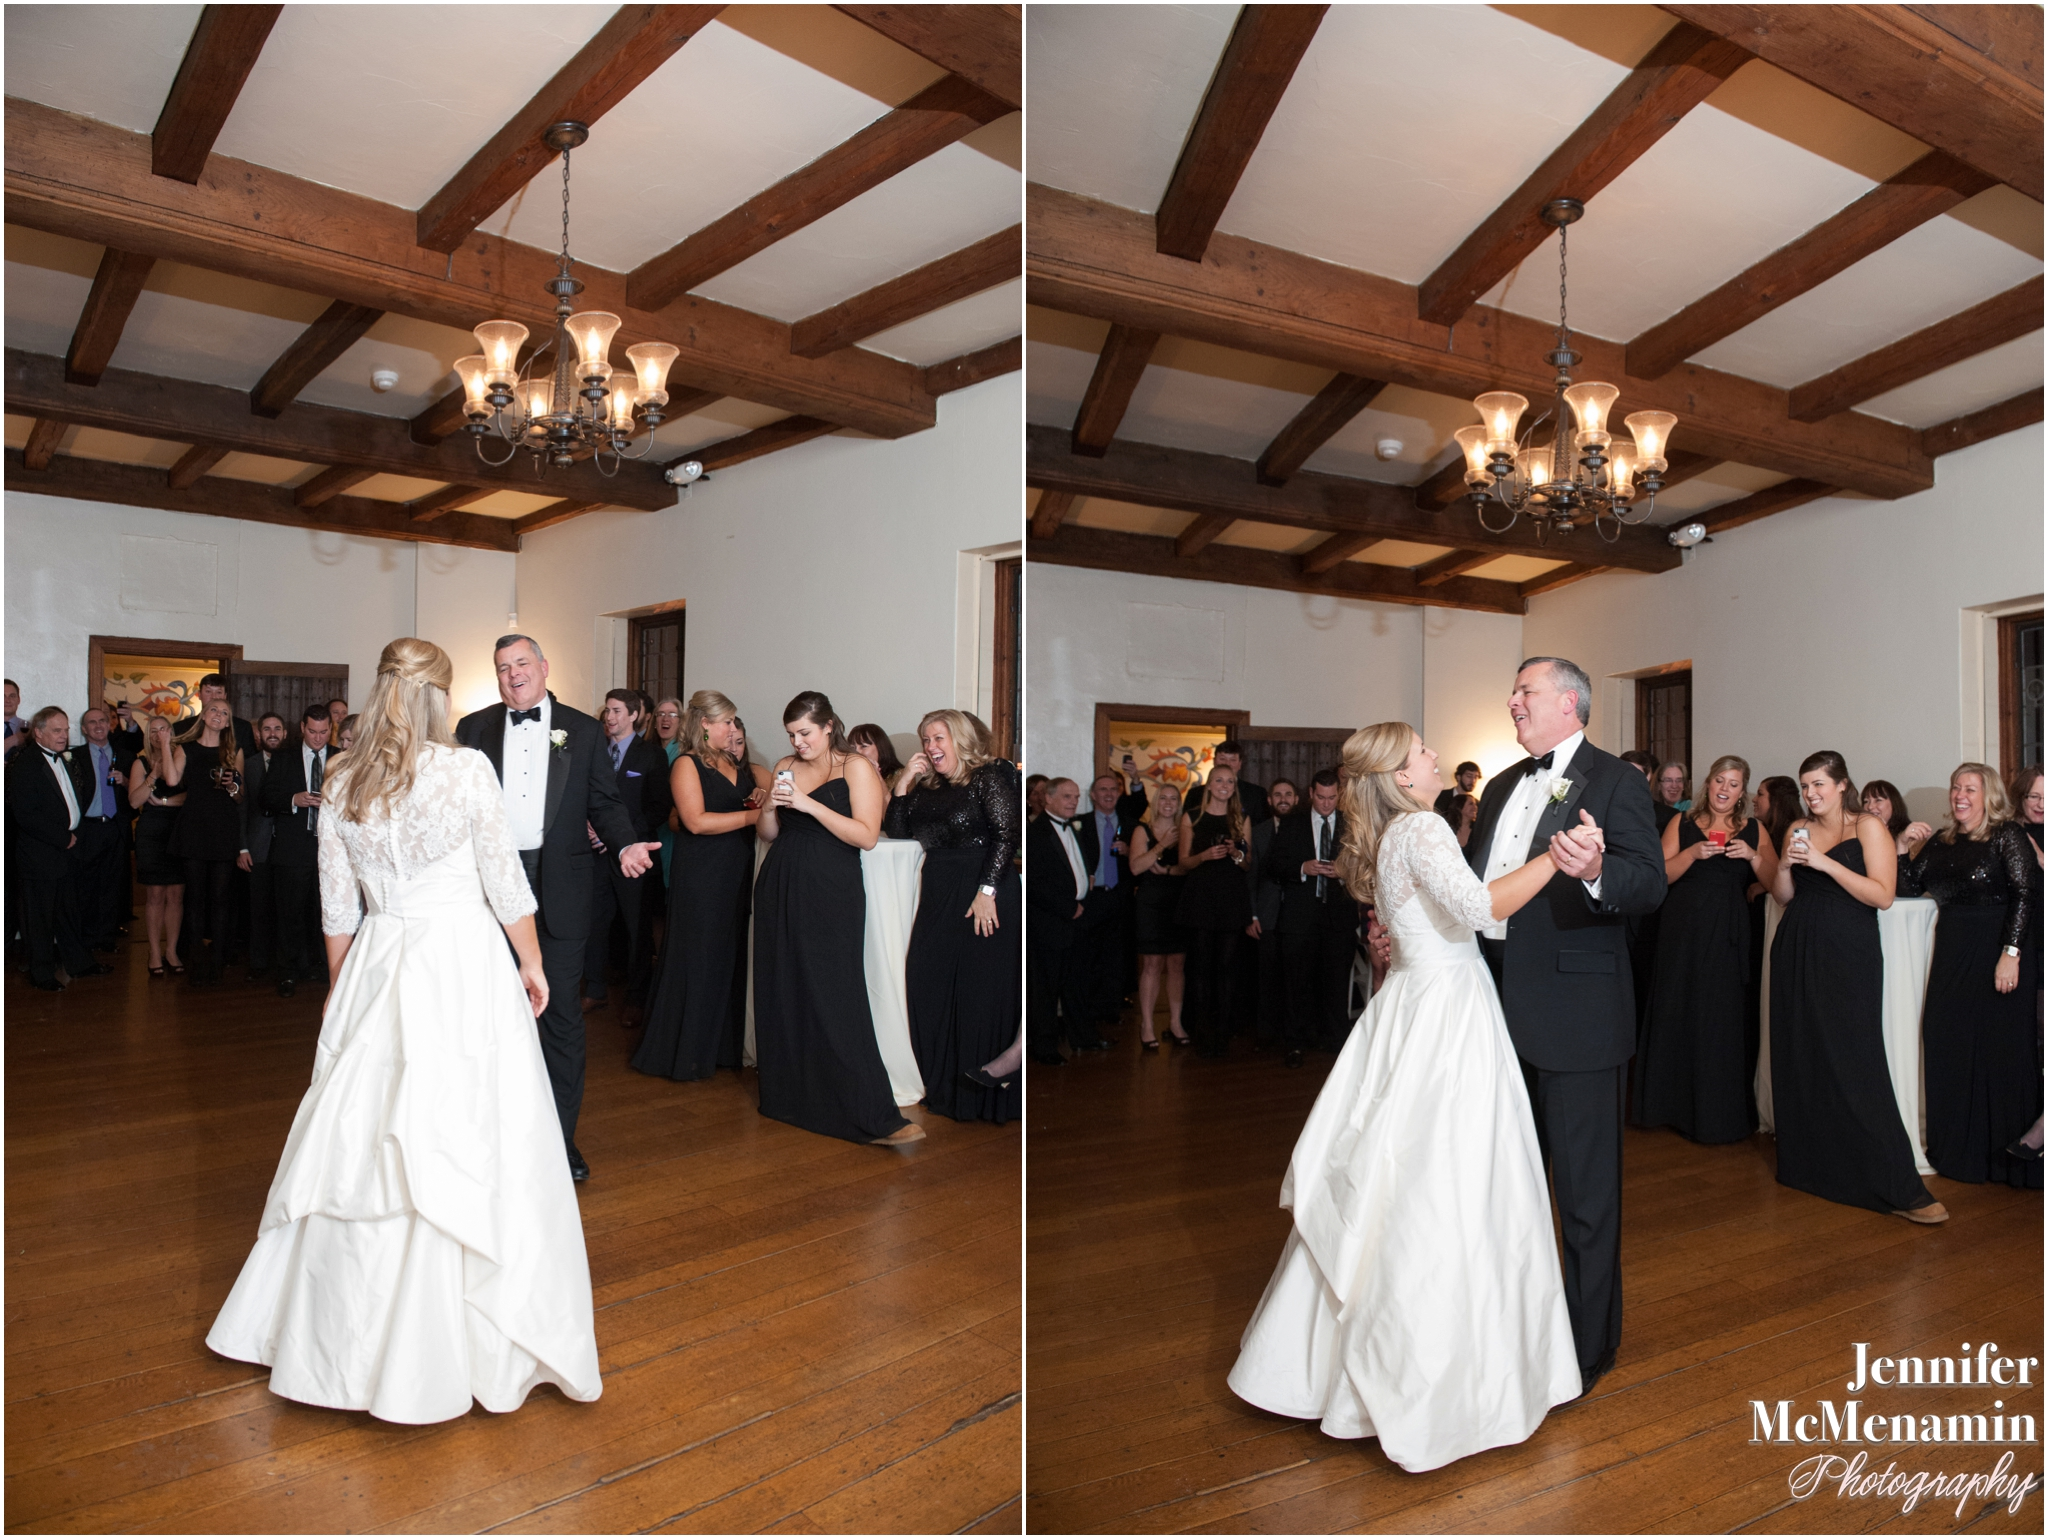 0100_RyanClemmens_02799-0741_JenniferMcMenaminPhotography_Immaculate-Conception-Church_The-Cloisters_Baltimore-wedding-photography_Baltimore-wedding-photographer